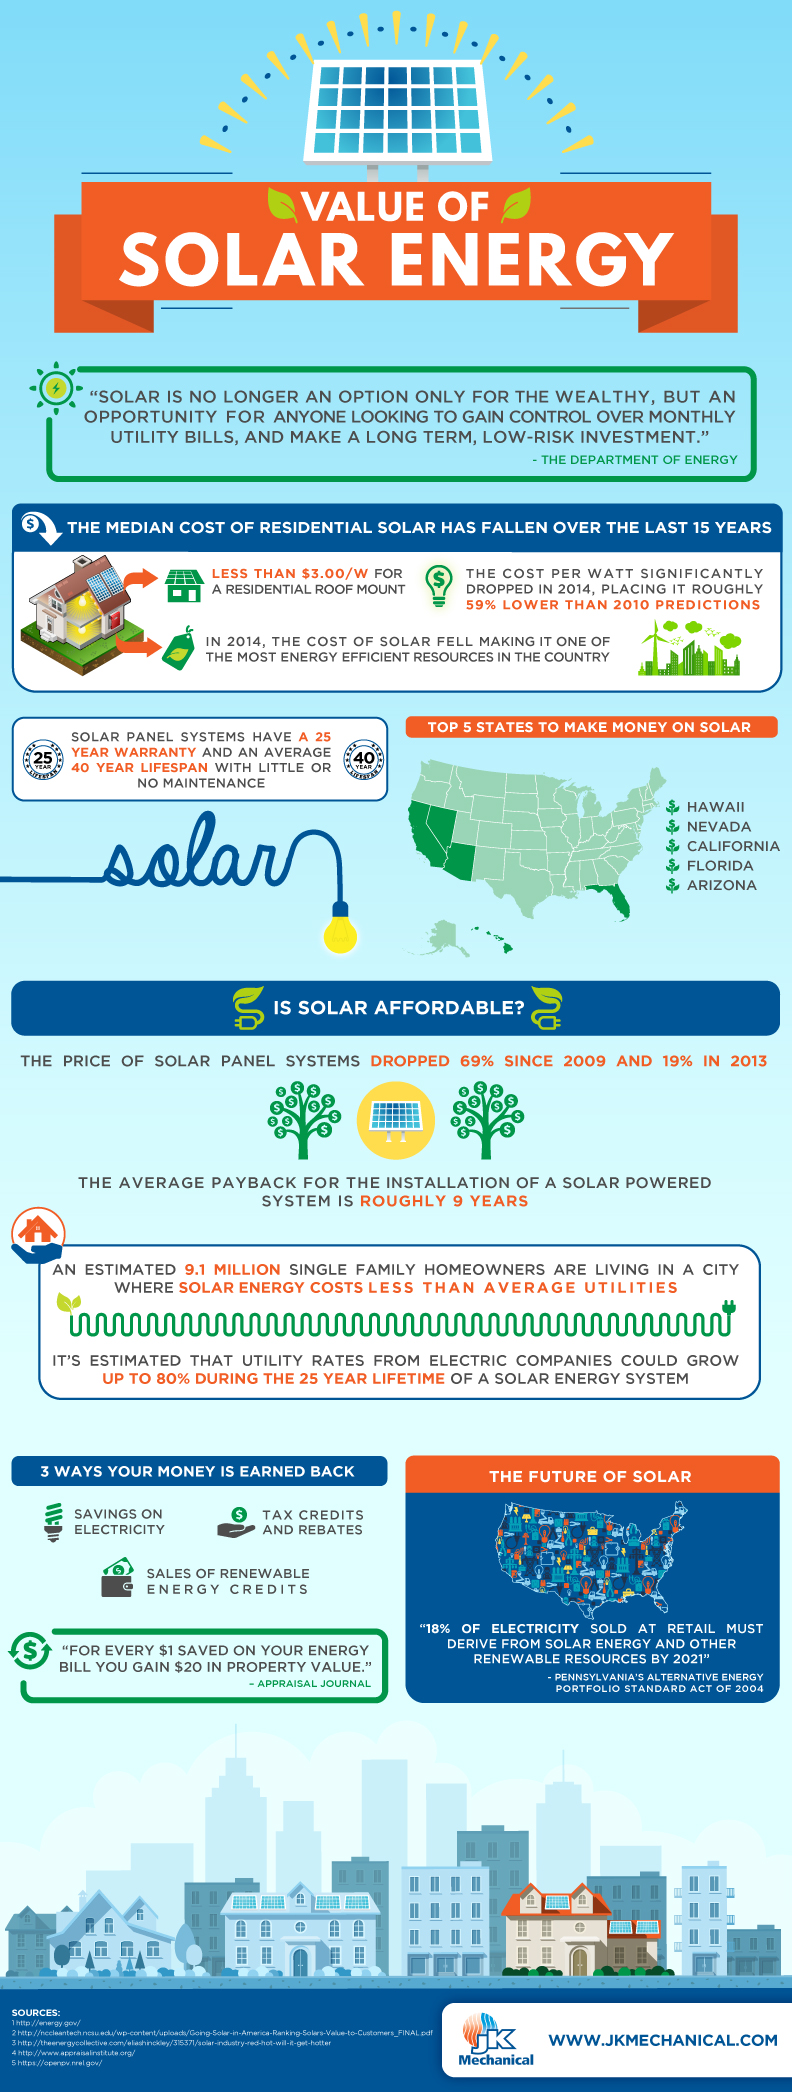 INFOGRAPHIC - The importance of solar energy